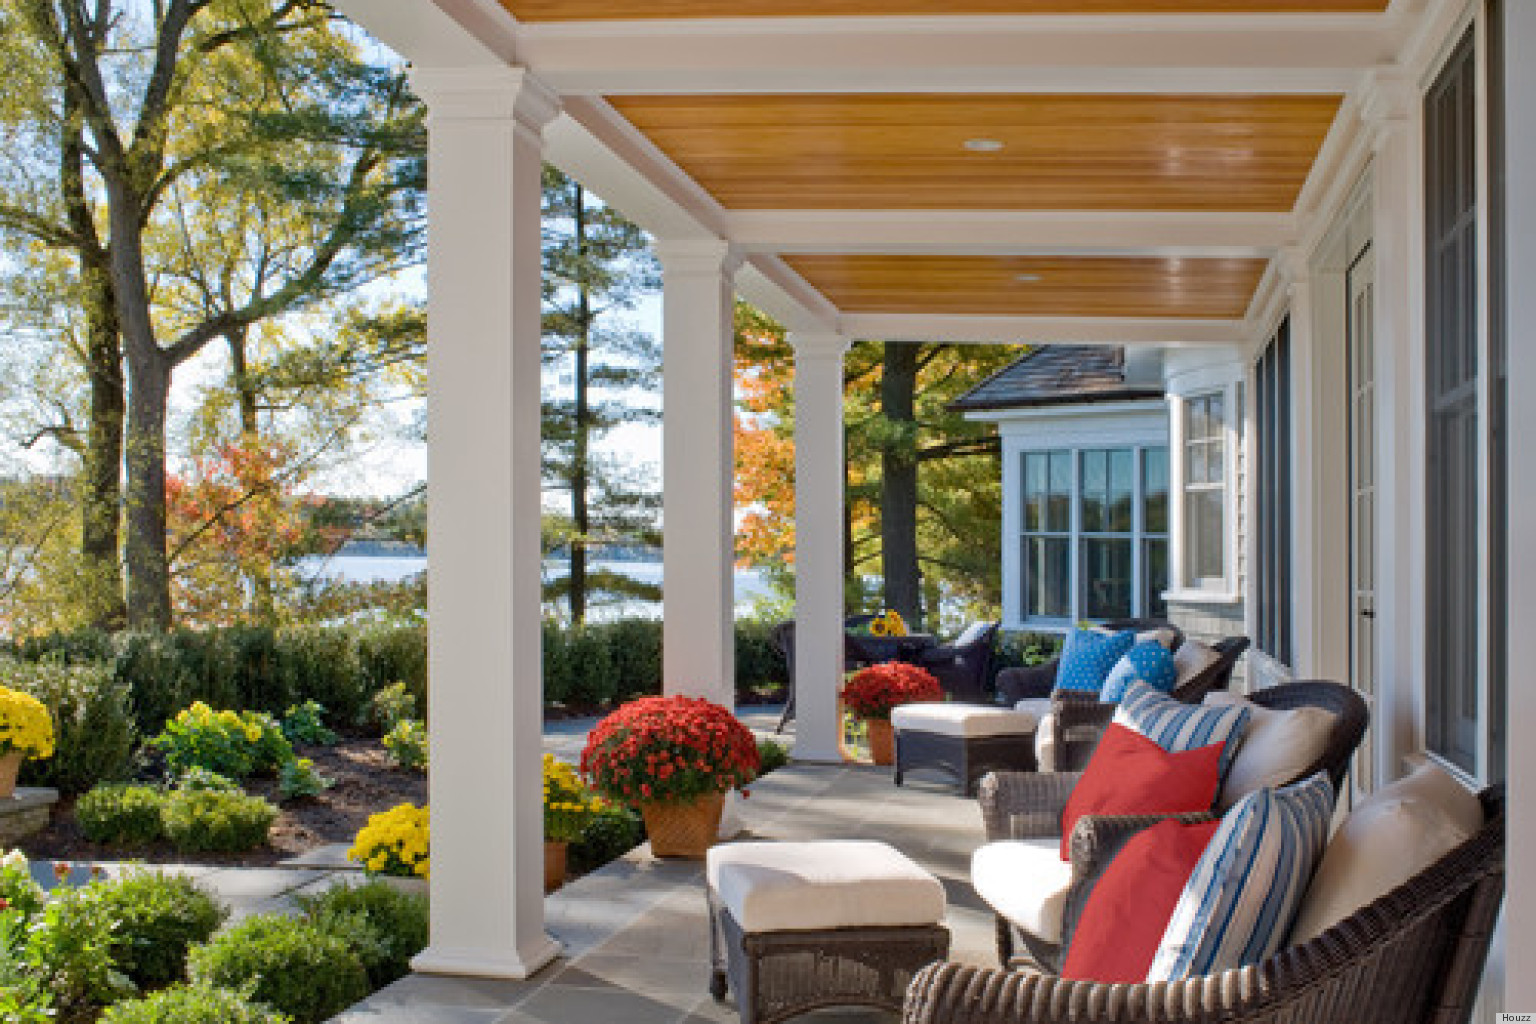 11 Pretty Porches That Will Have You Feeling Relaxed In No Time (PHOTOS) |  HuffPost